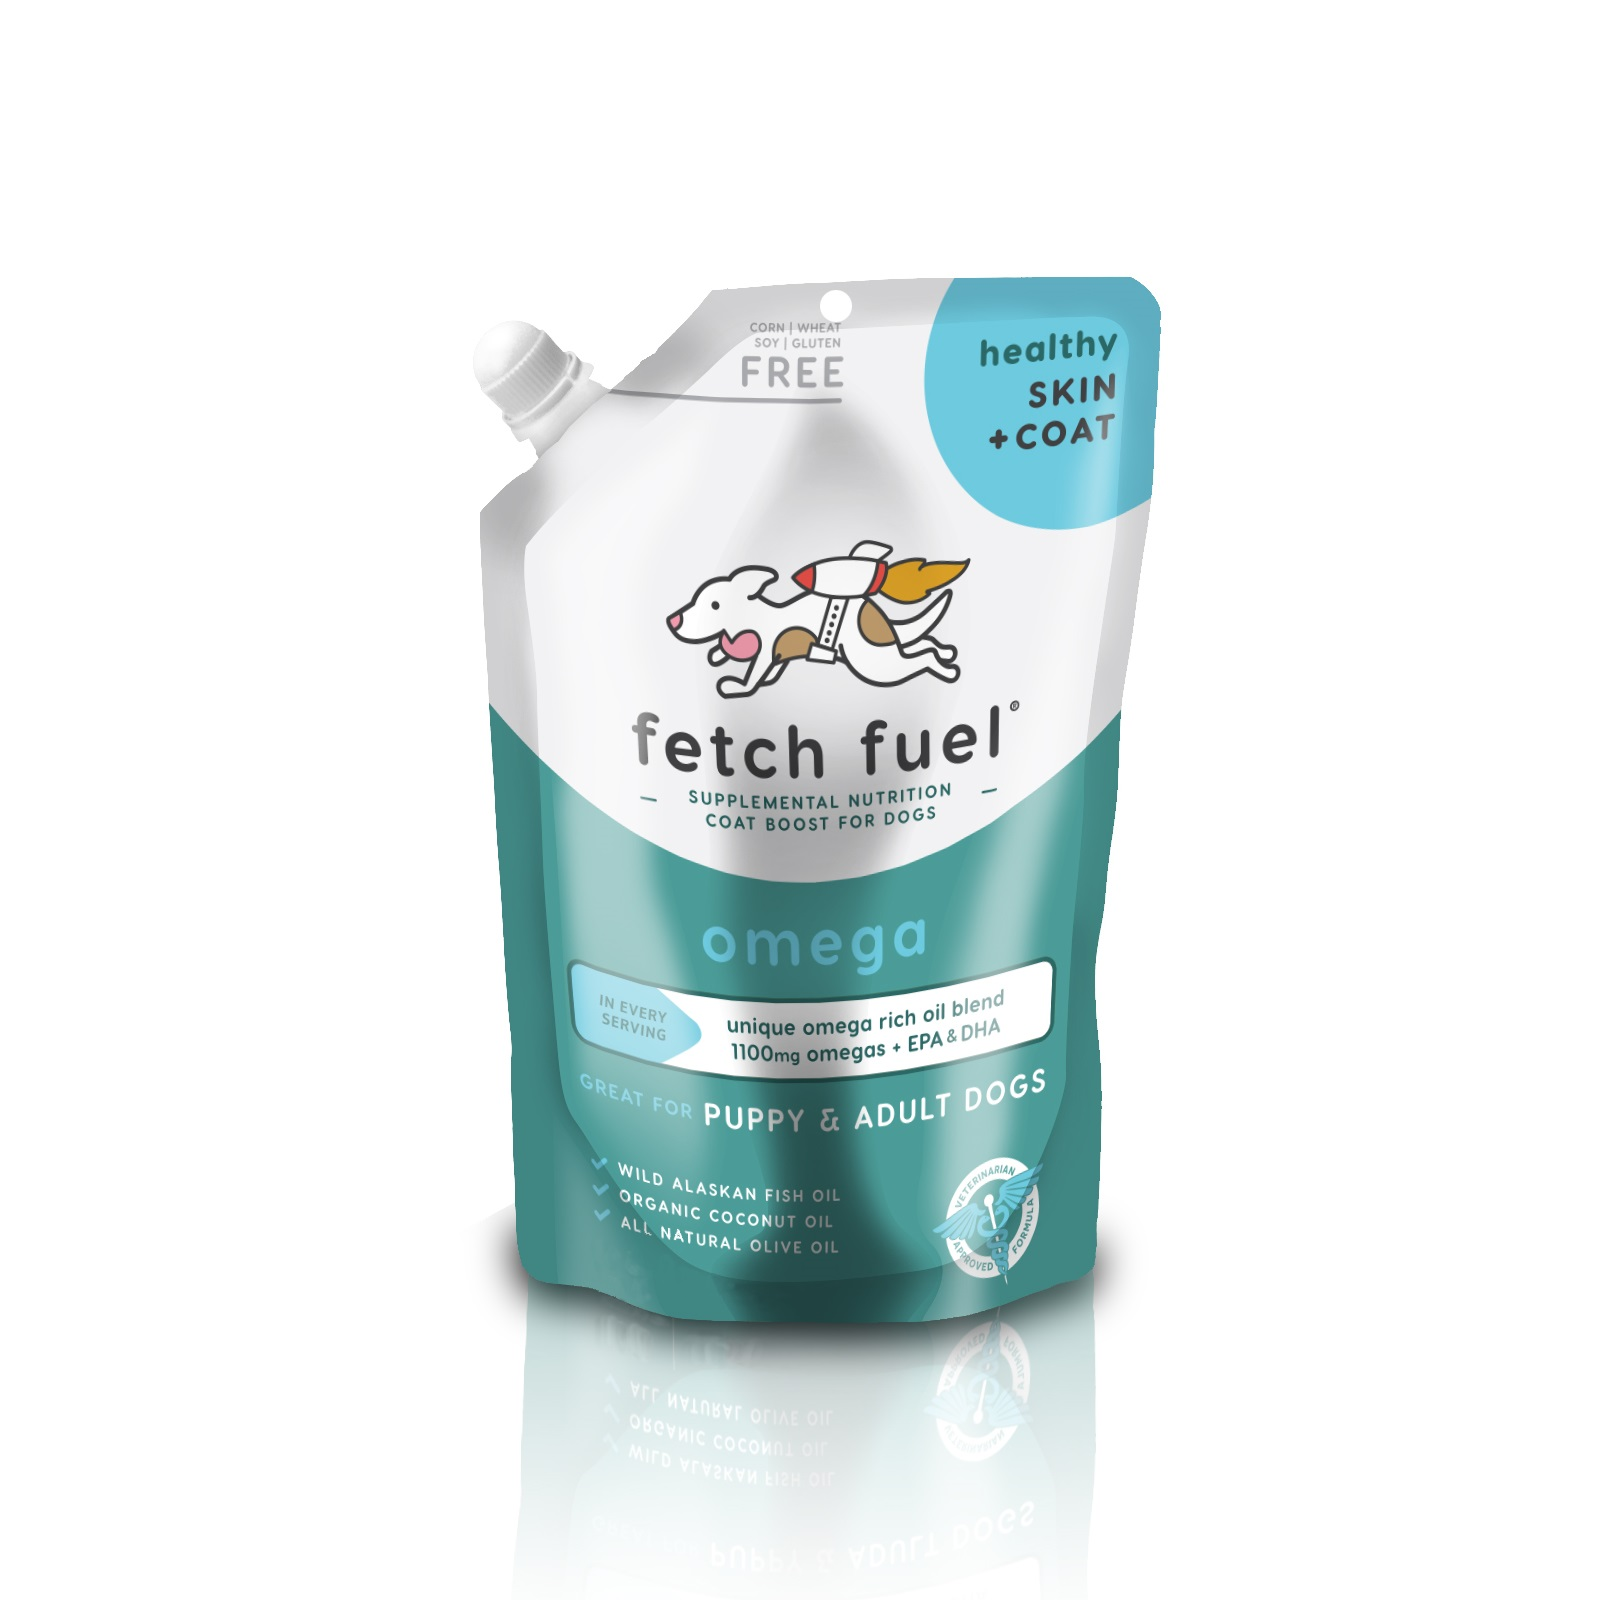 Presidio Fetch Fuel Omega Skin + Coat Supplement for Dogs, 12.5-oz